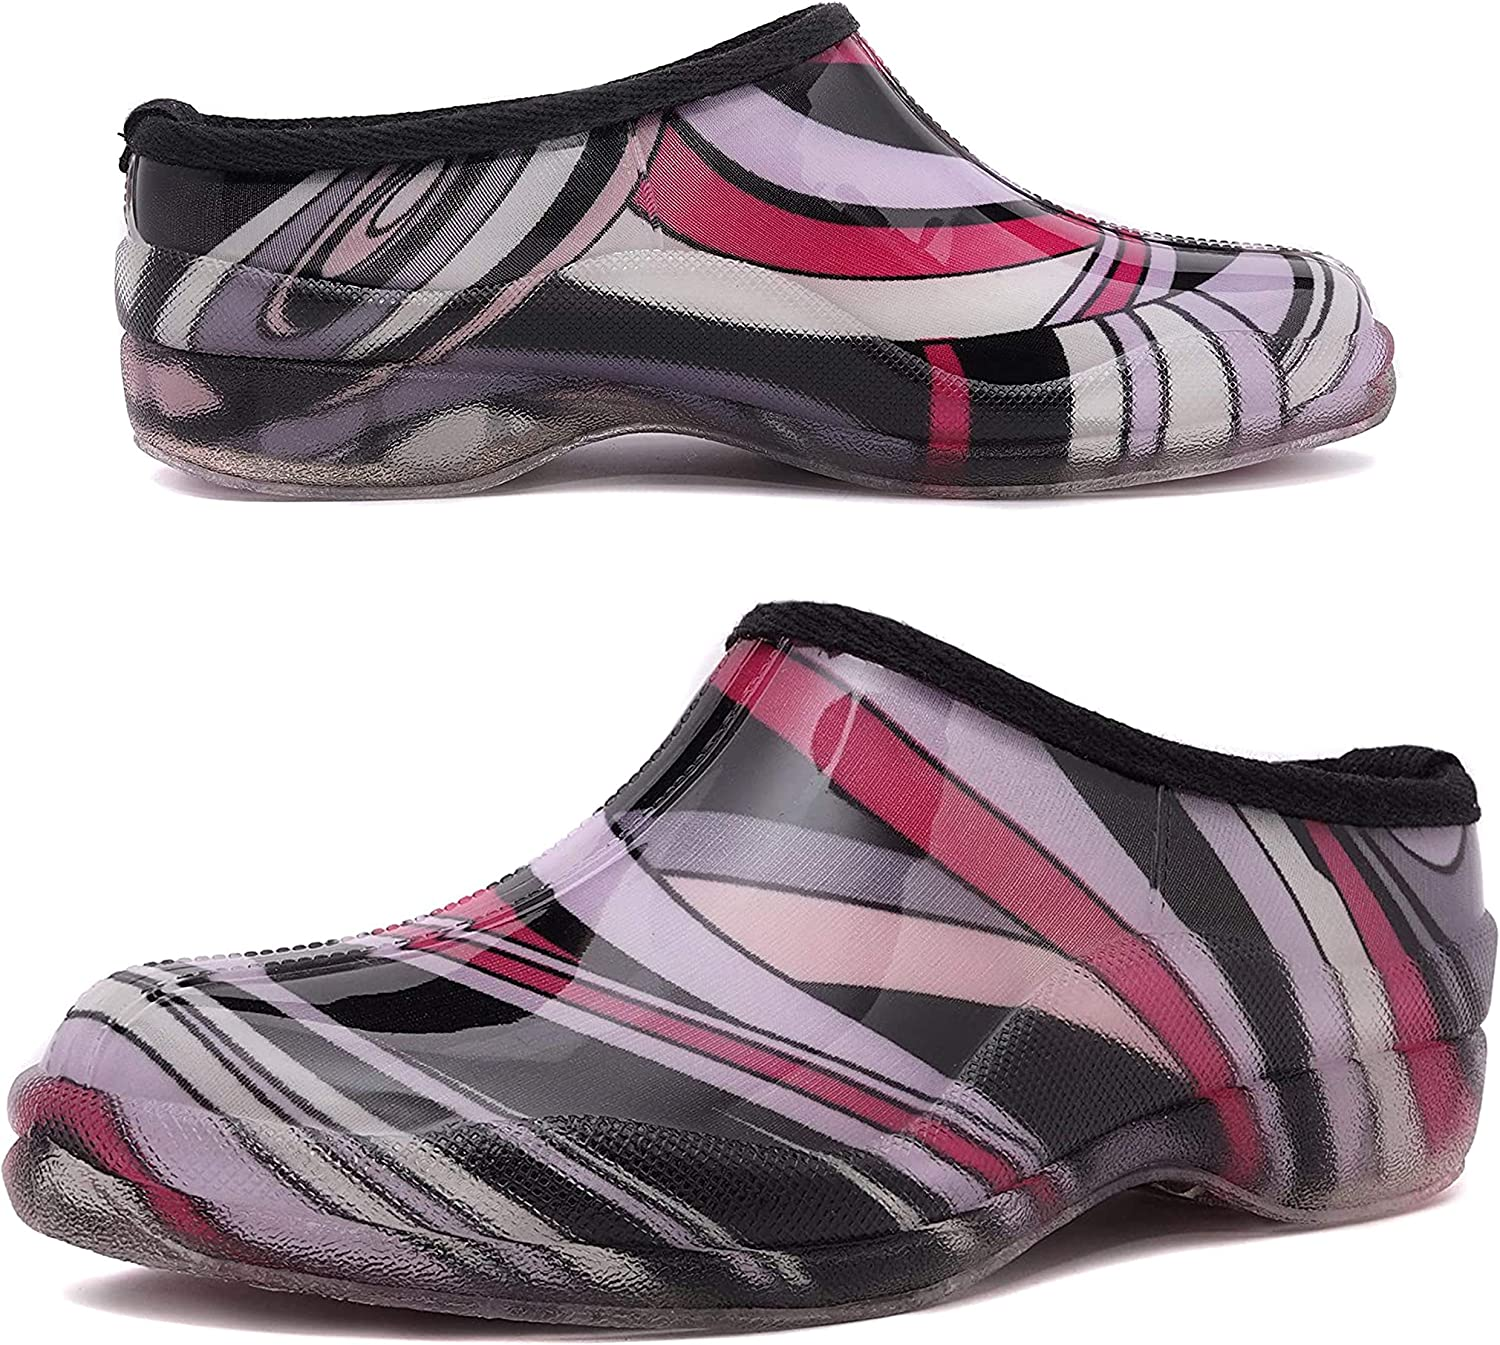 Charles Albert Waterproof Clogs for Ank Fleece Liner sold out Omaha Mall with Women